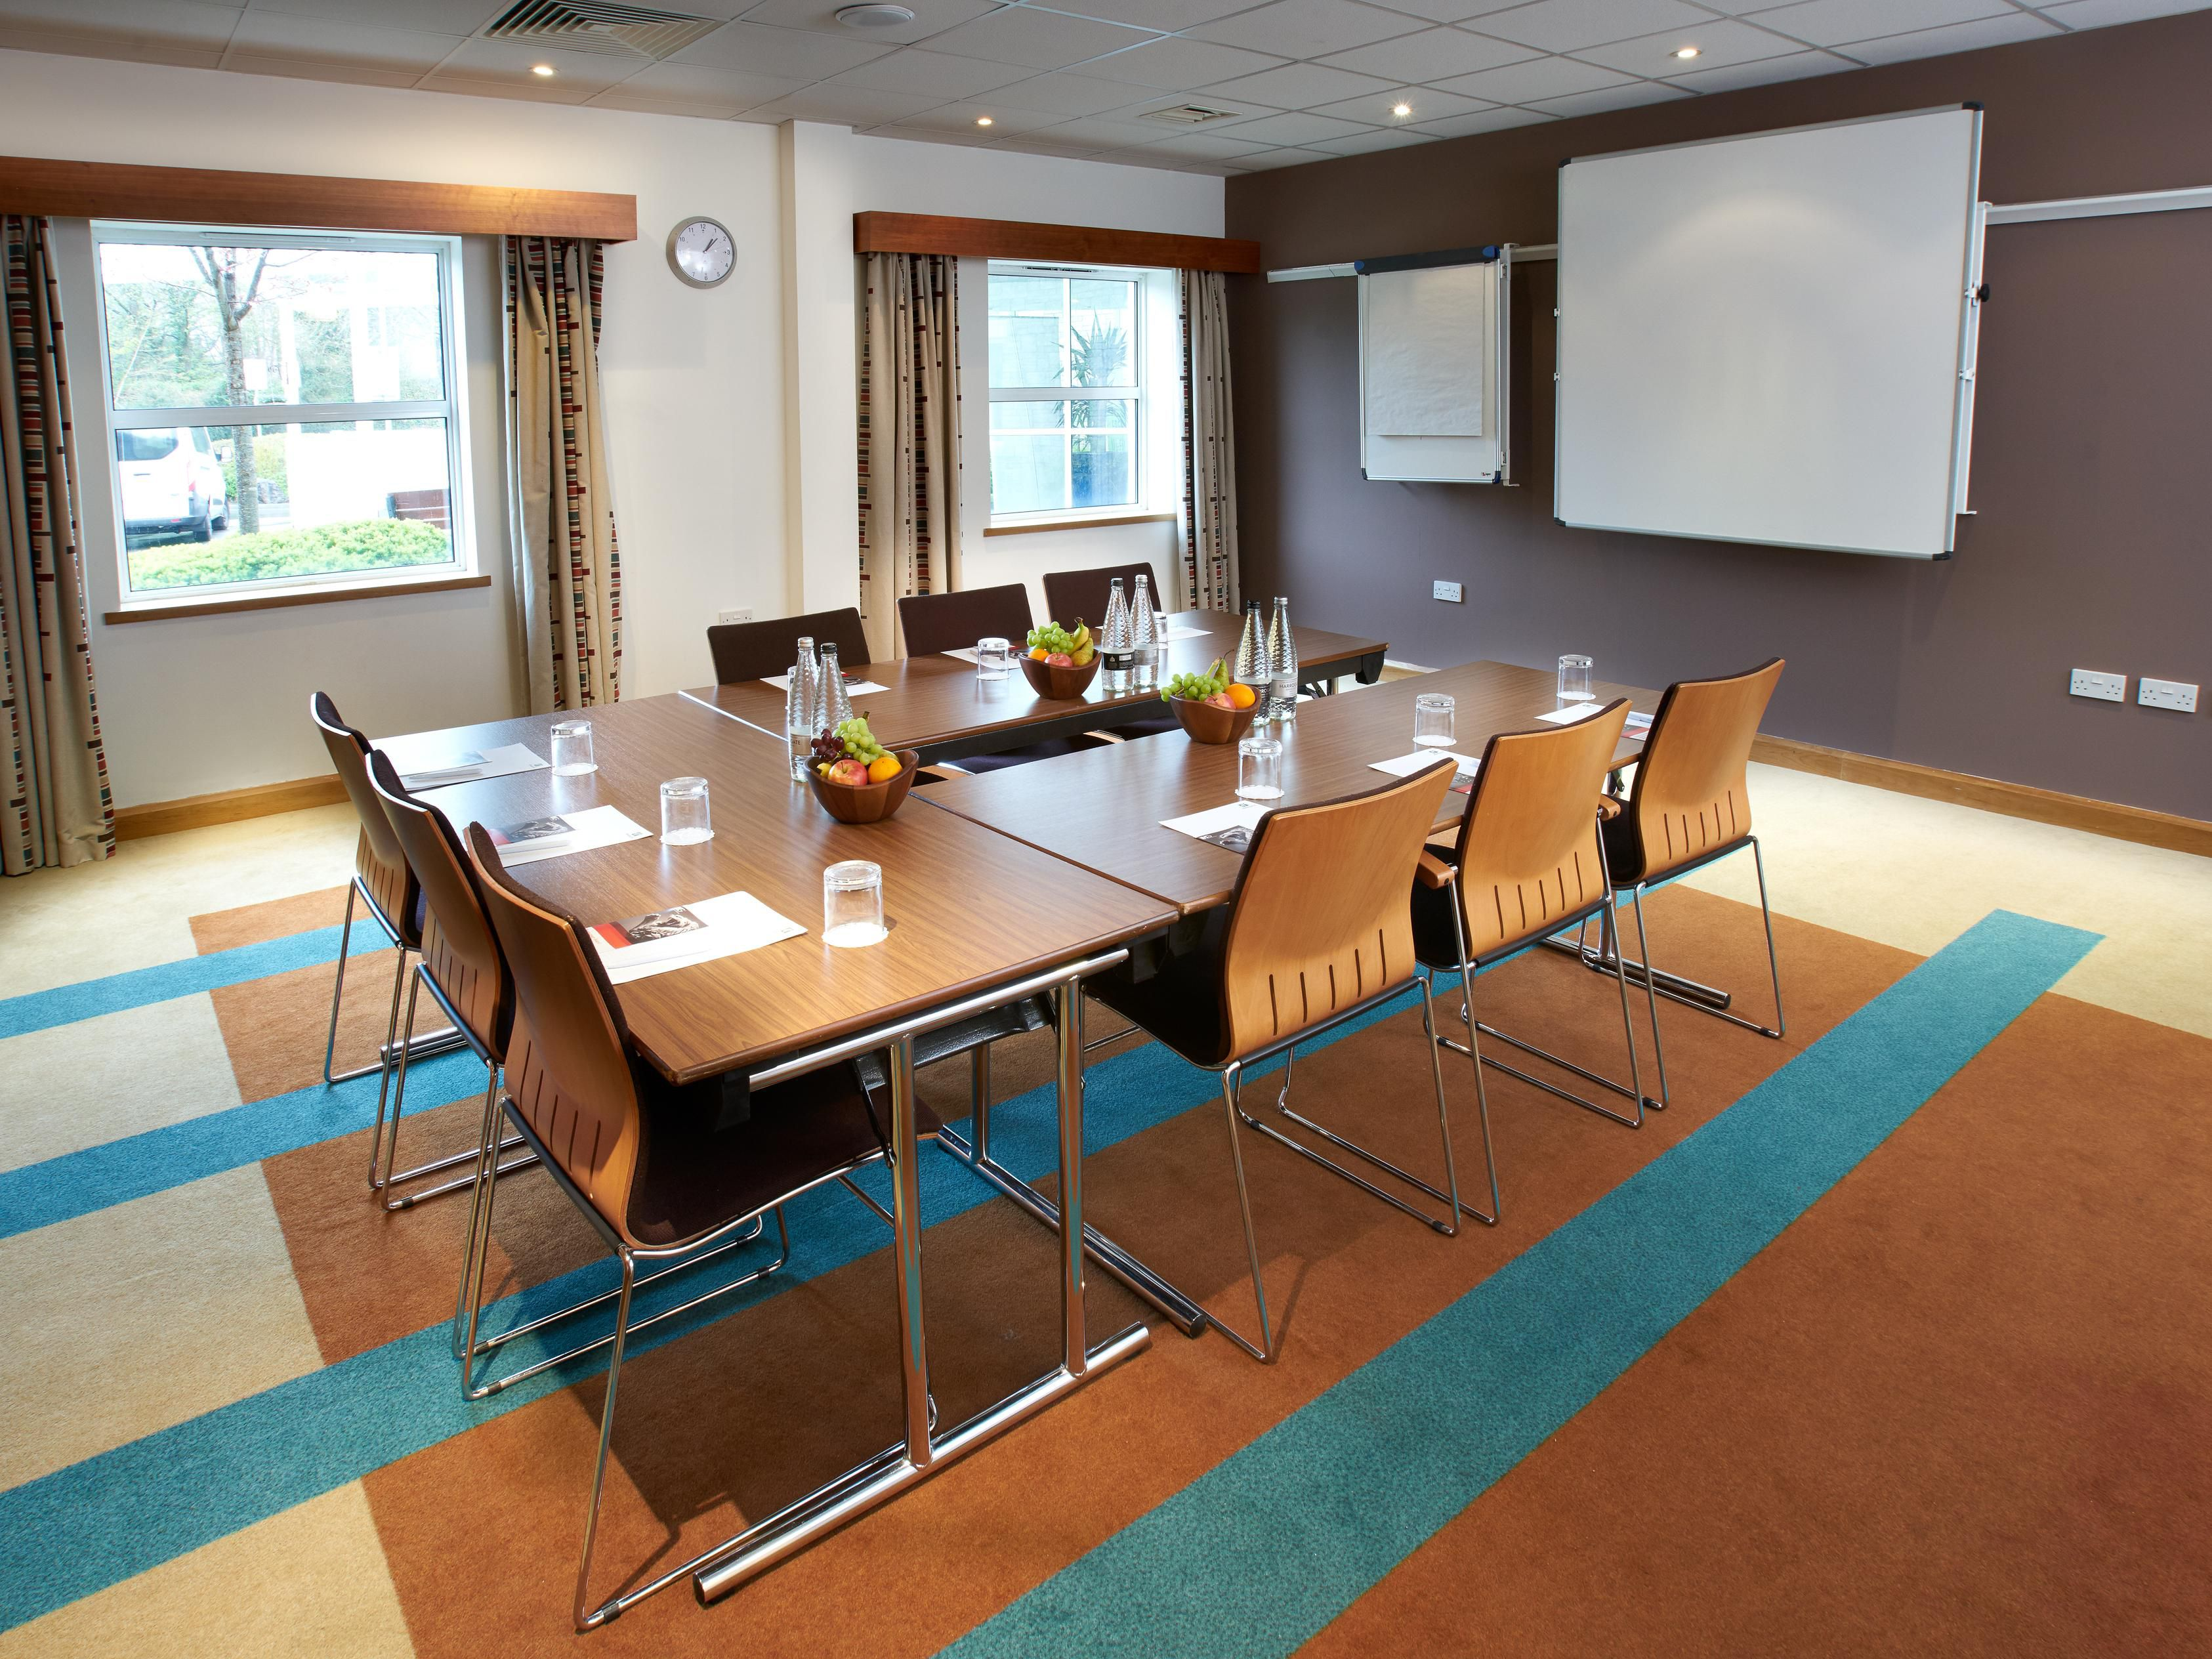 Brunel Room Boardroom Style